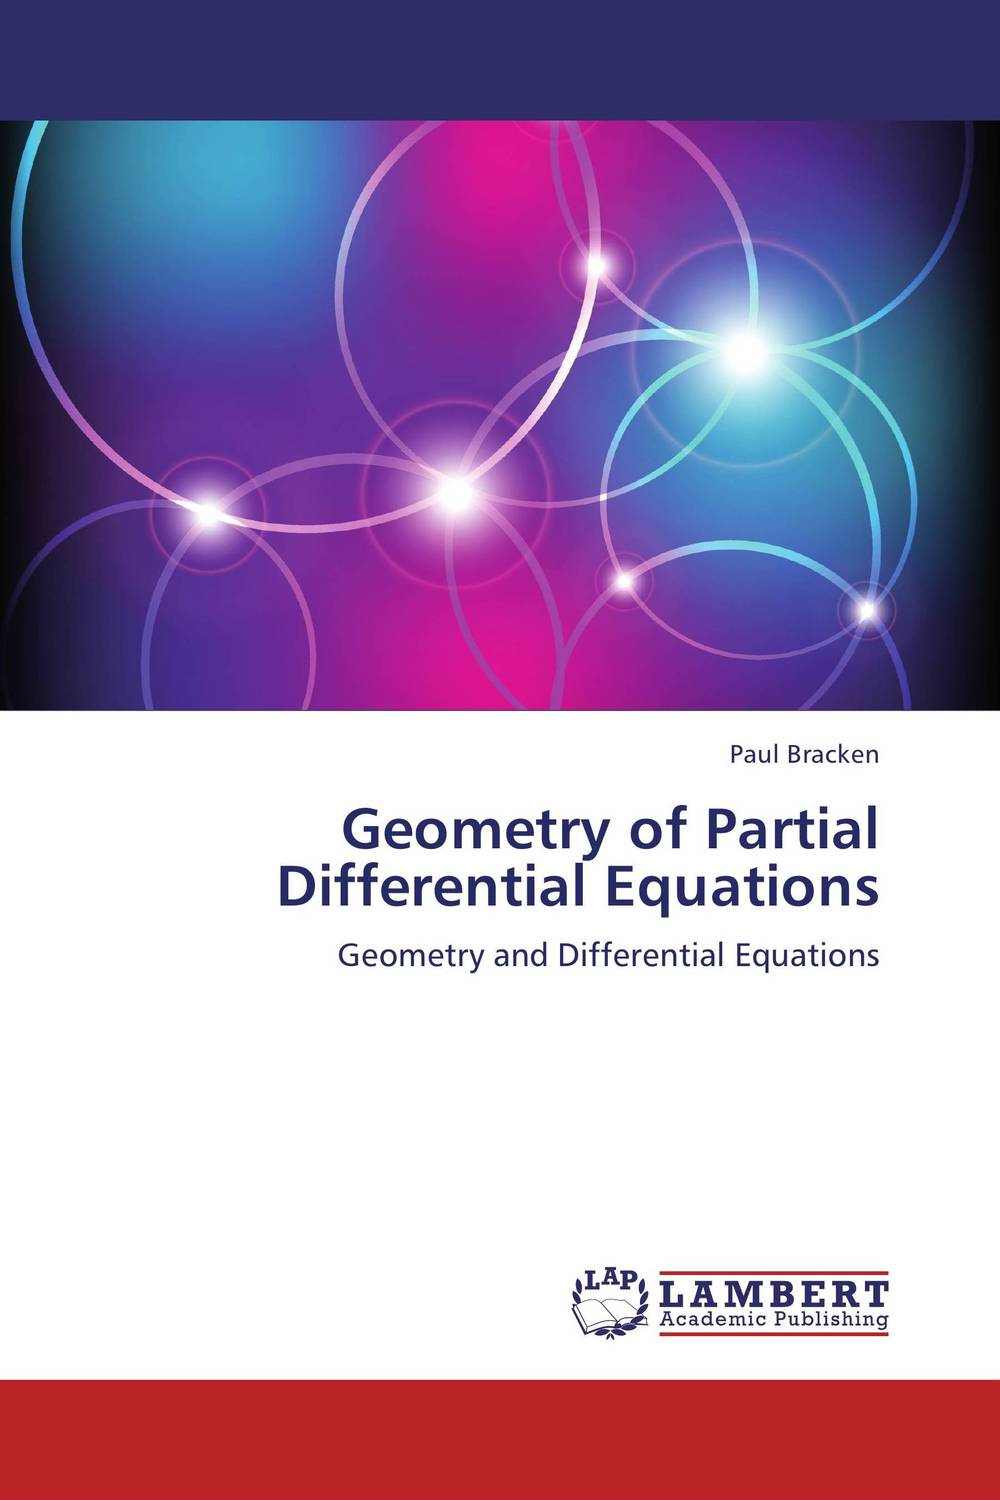 Geometry of Partial Differential Equations